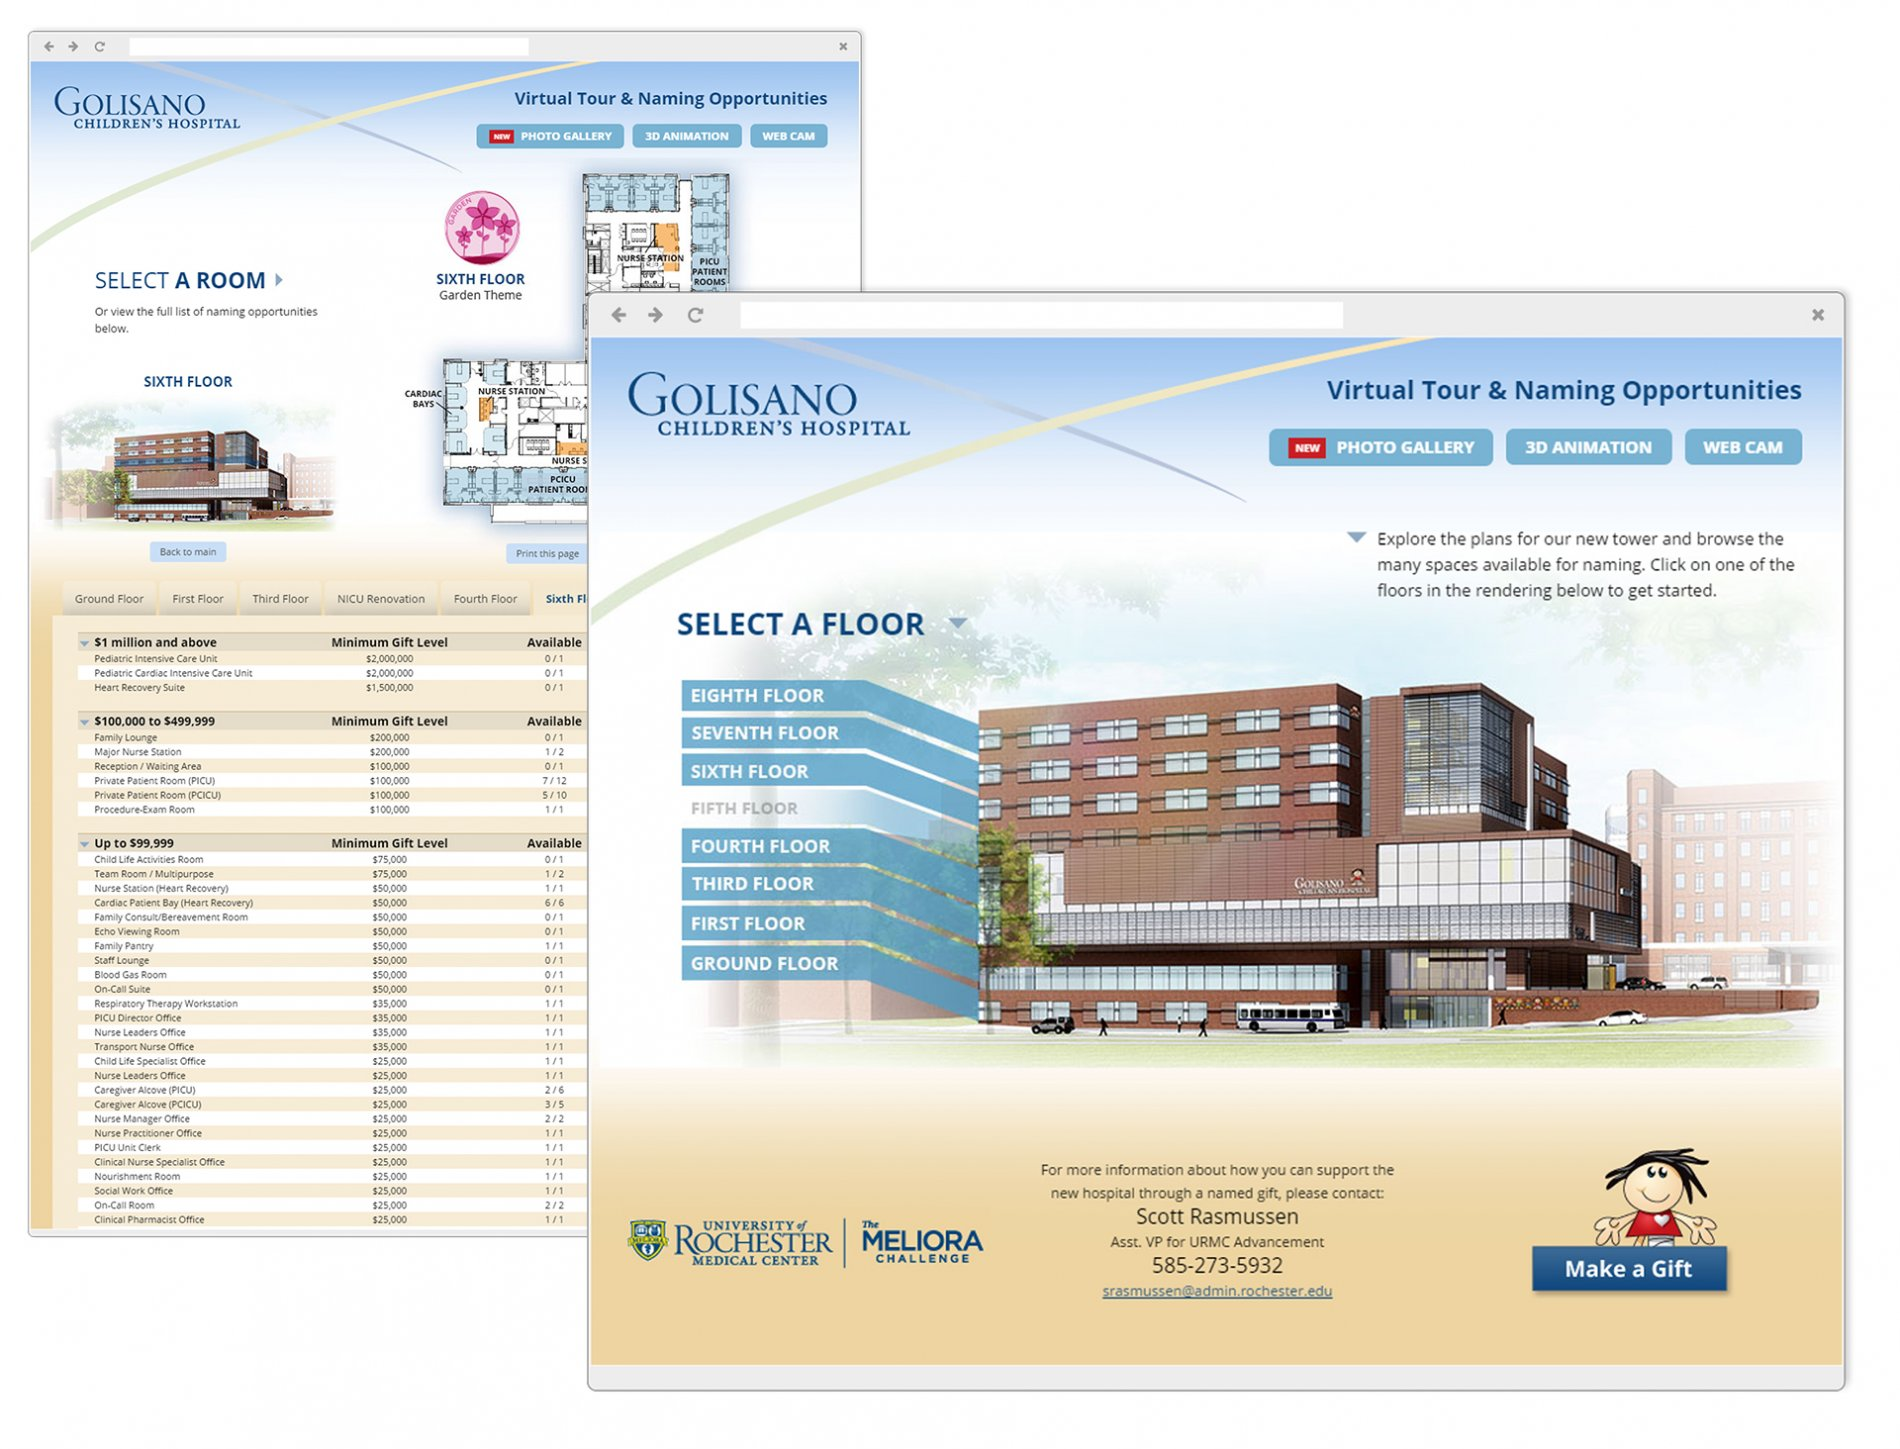 Floor/Location Highlight Screen of Golisano Childrens Hospital Building Naming Campaign Application